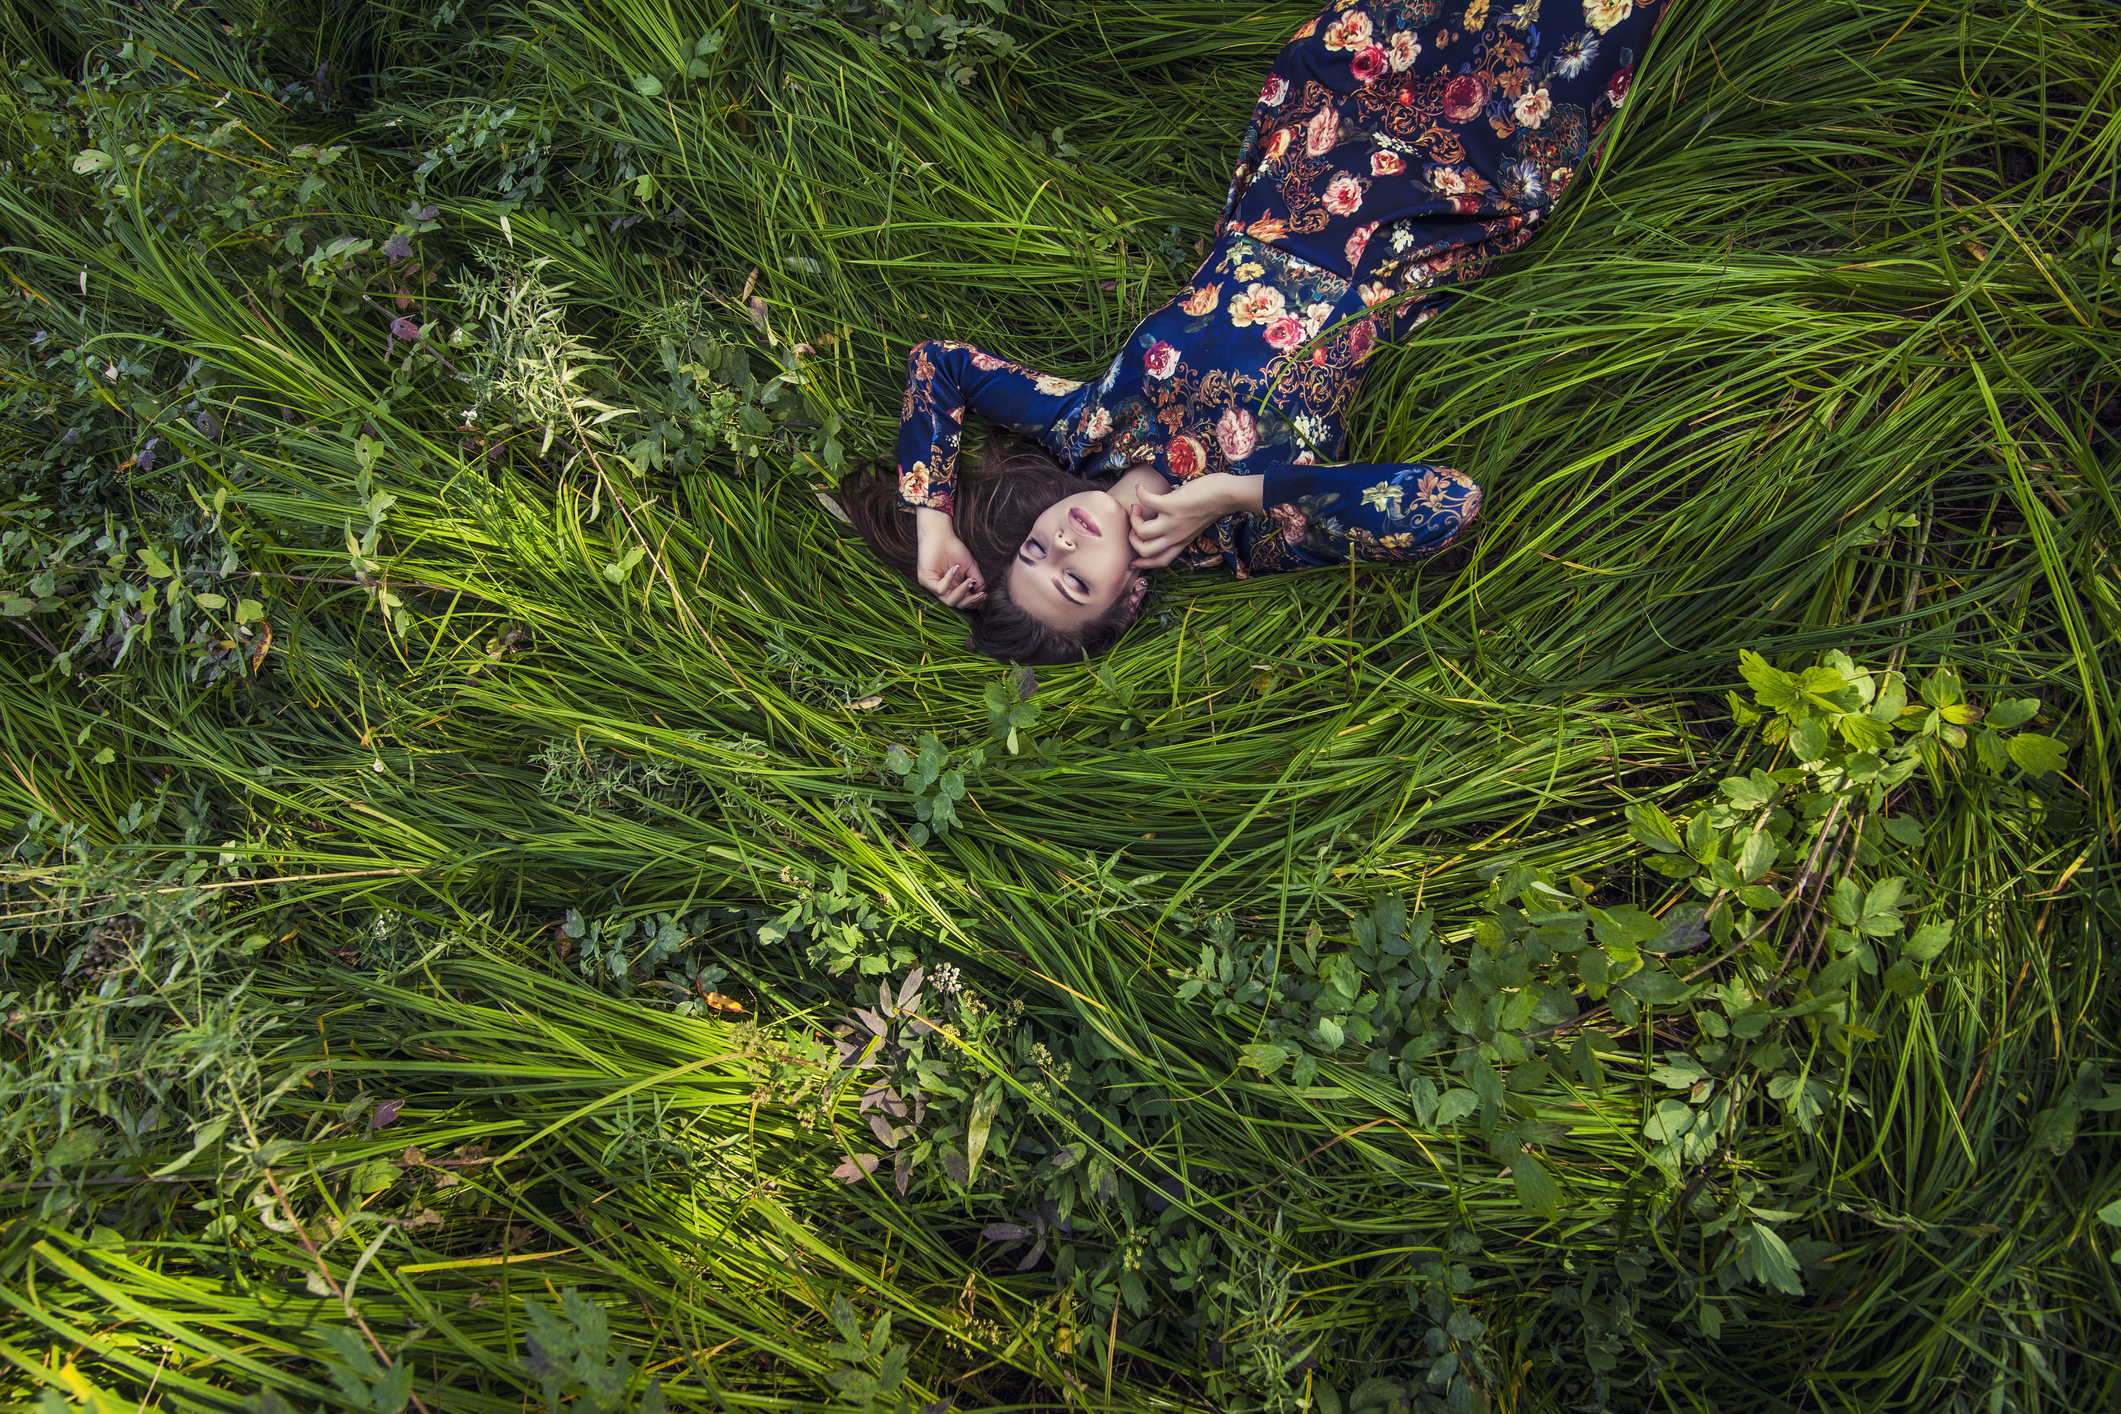 Woman relaxes in the grass